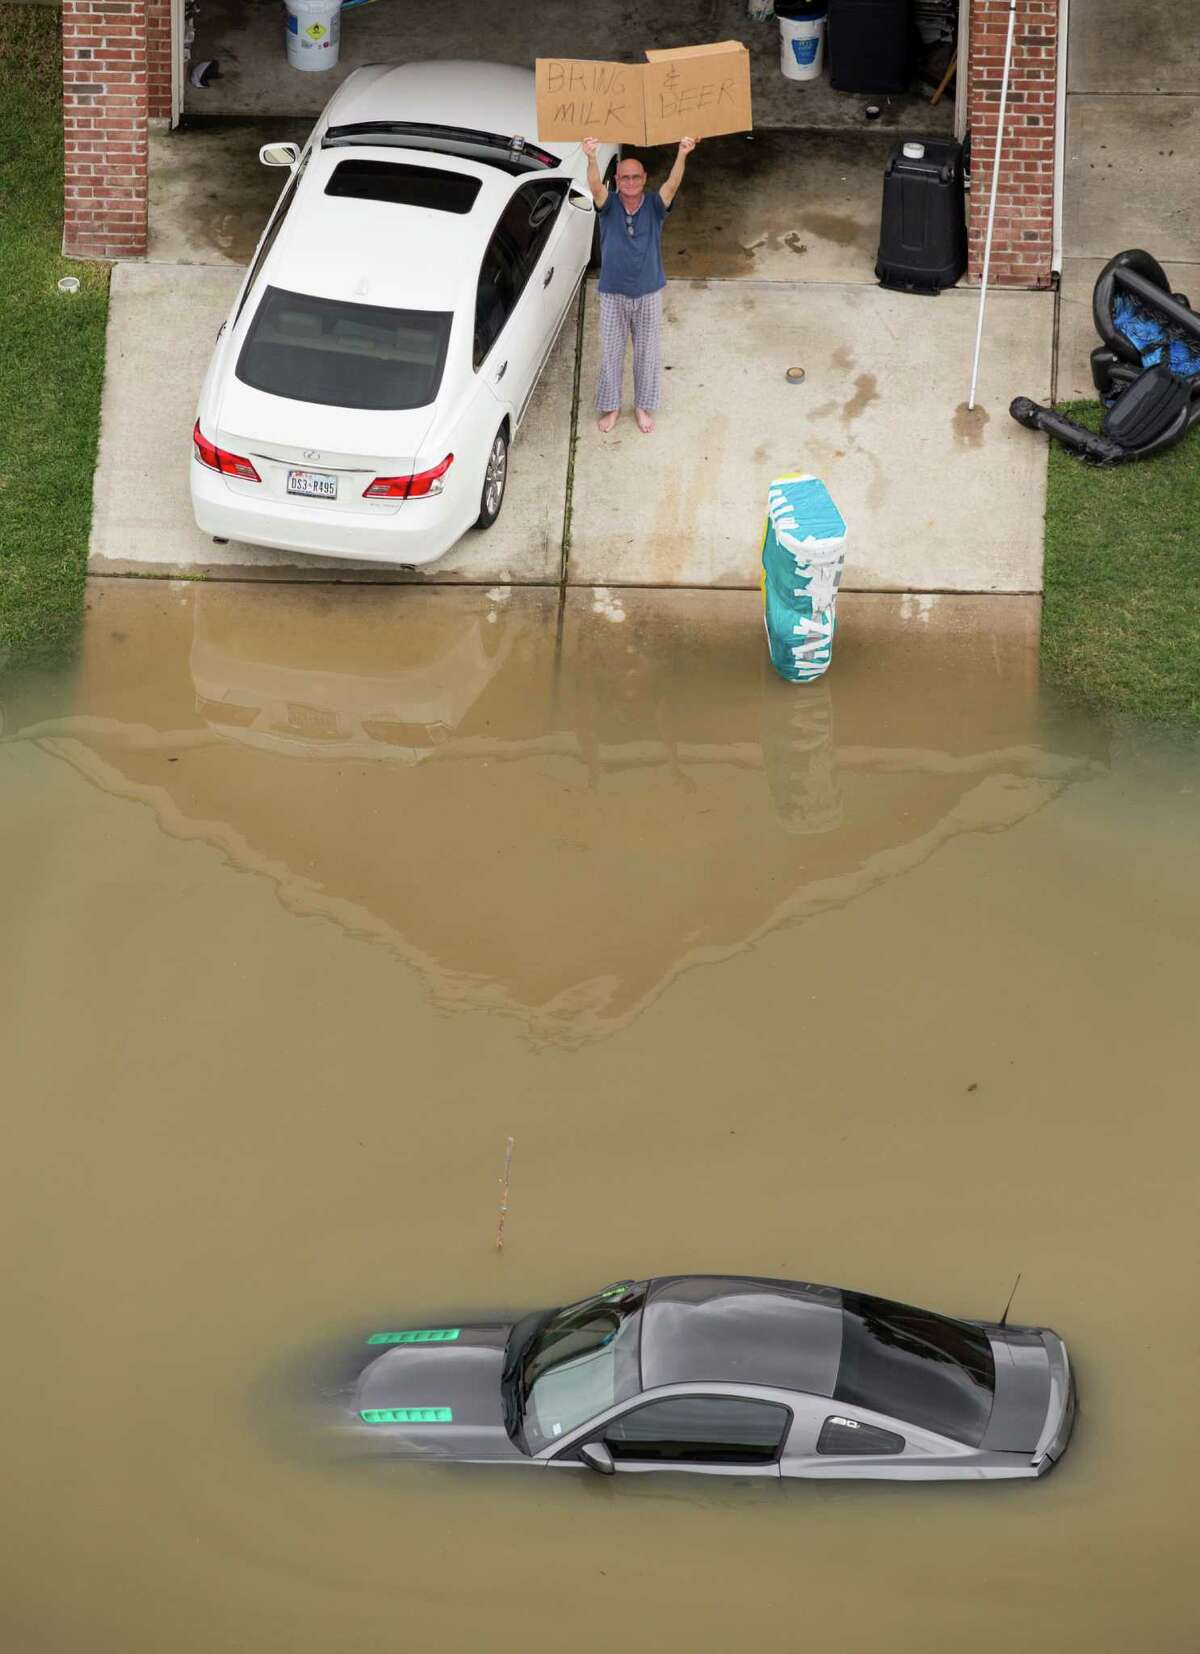 """A man holds up a sign saying, """"Bring Milk & Beer"""" as floodwaters creep close to a house last week in the Wimbledon Champions Park subdivision."""